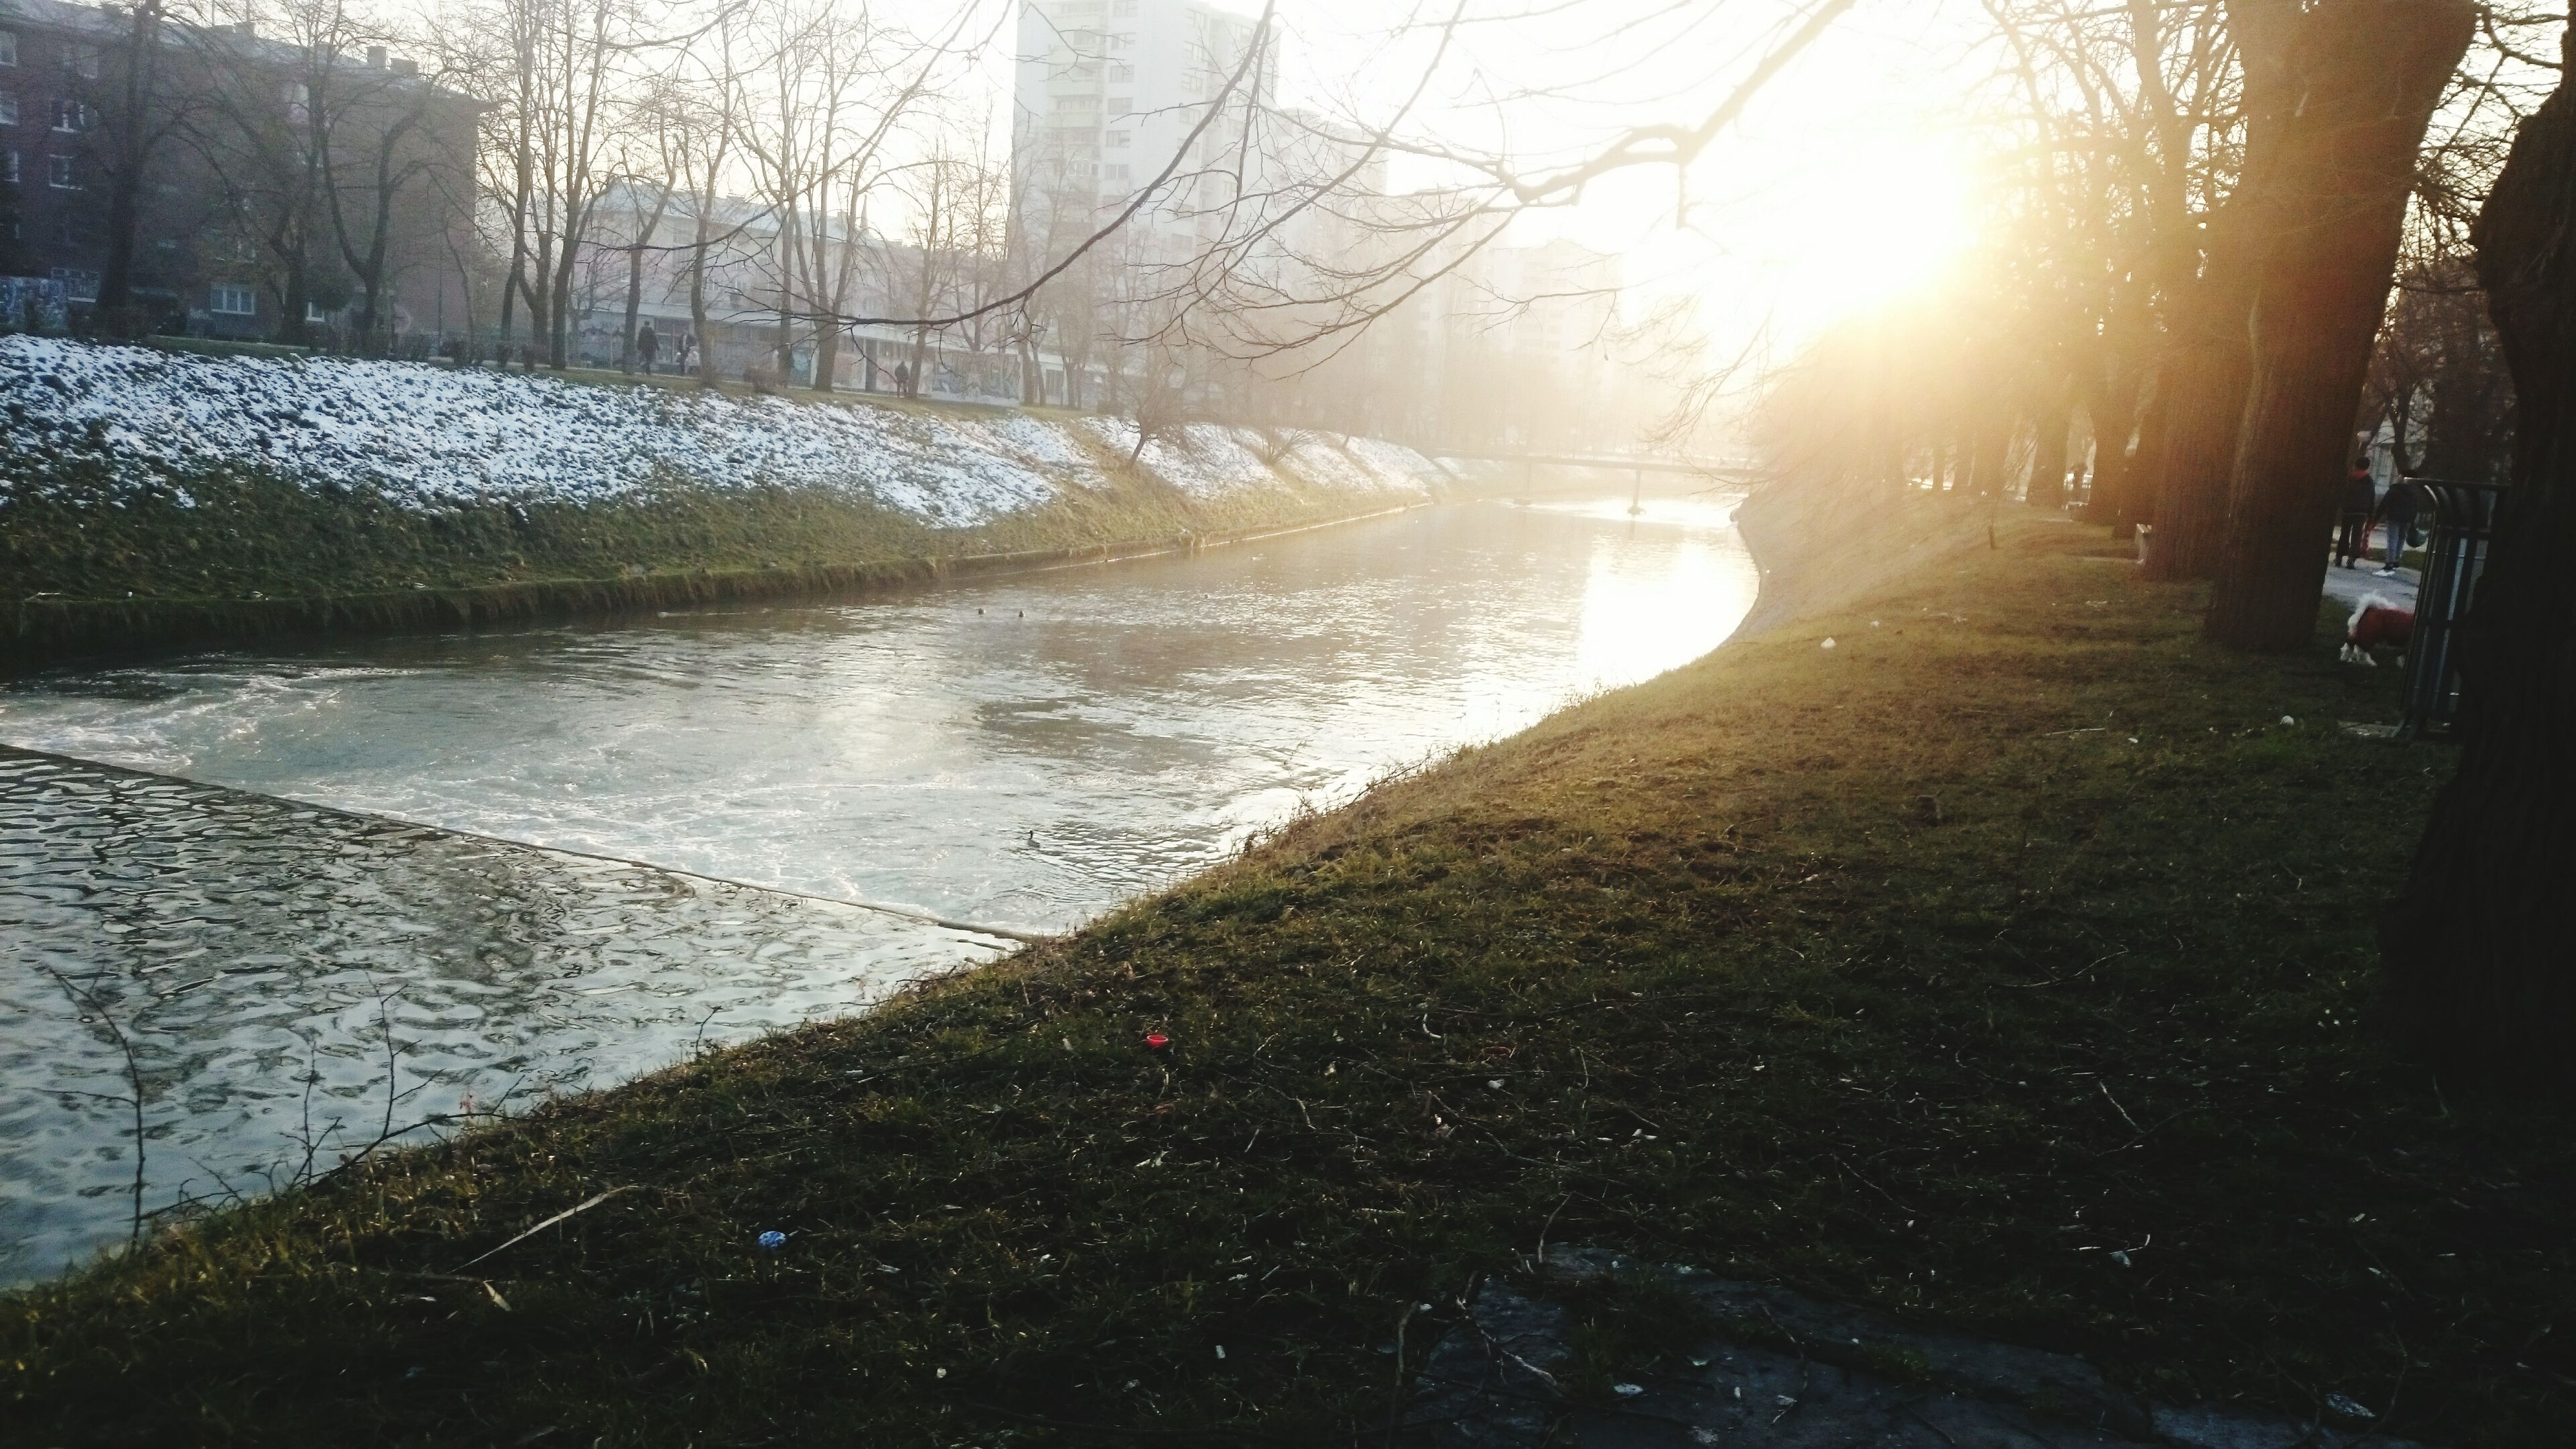 sun, sunlight, water, sunbeam, tree, tranquility, lens flare, tranquil scene, nature, reflection, beauty in nature, scenics, river, sunny, lake, day, outdoors, winter, shadow, bright